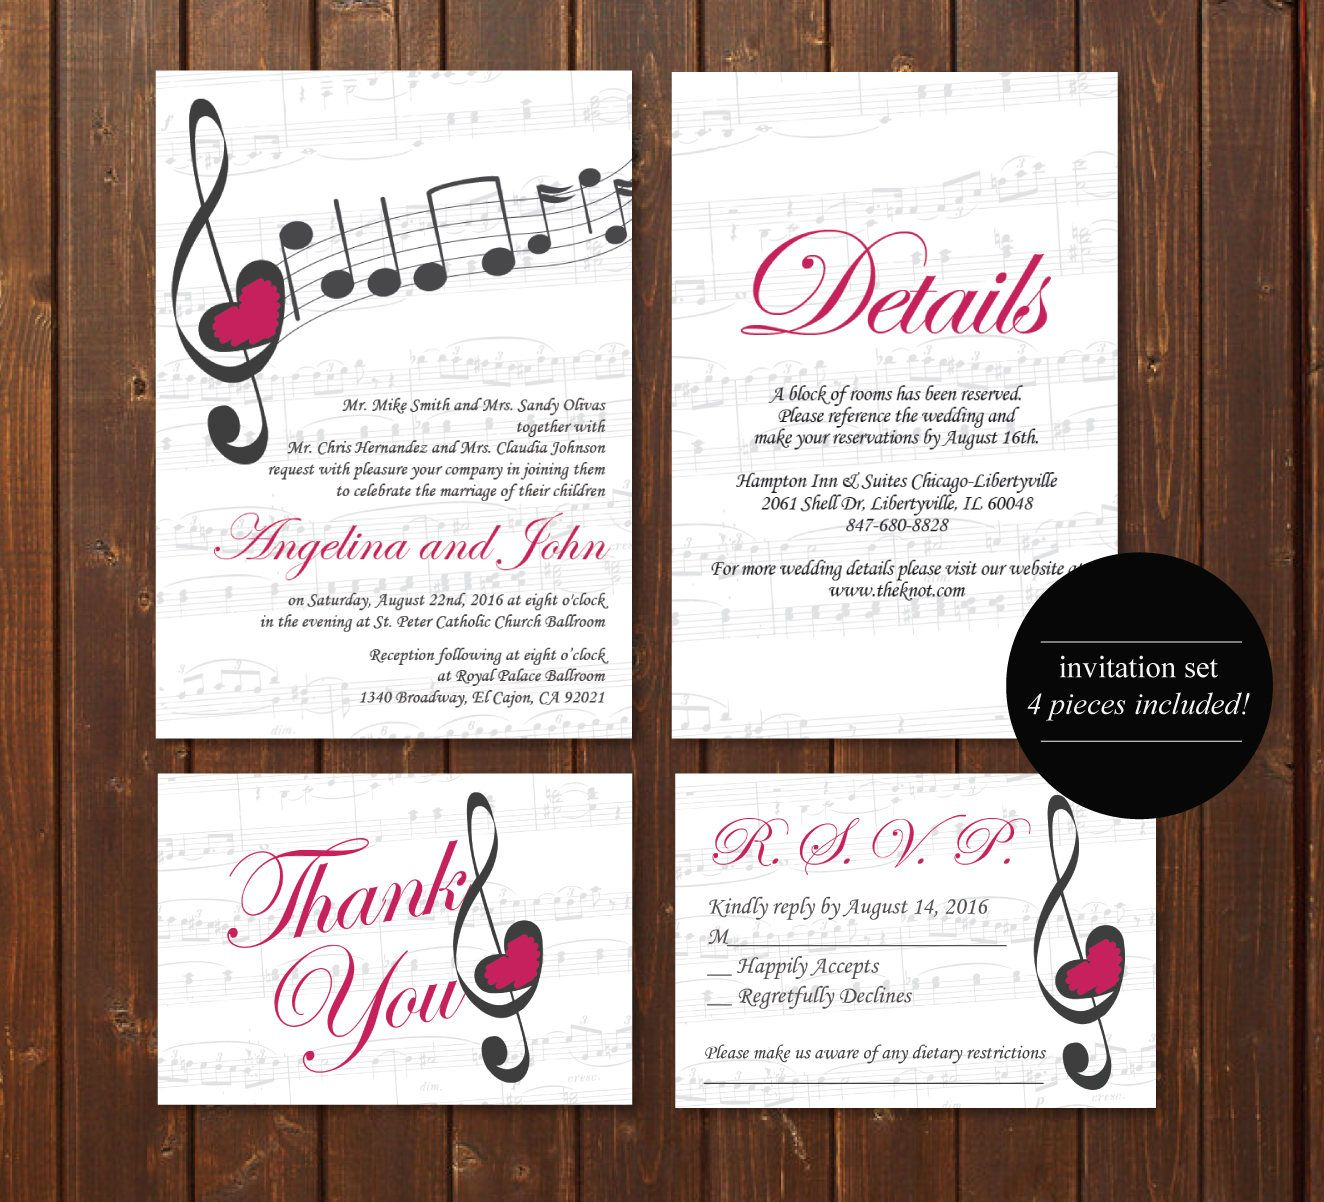 Music Wedding Invitation Printable TemplateVintageEcard Wedding - Wedding invitation templates: spanish wedding invitations templates